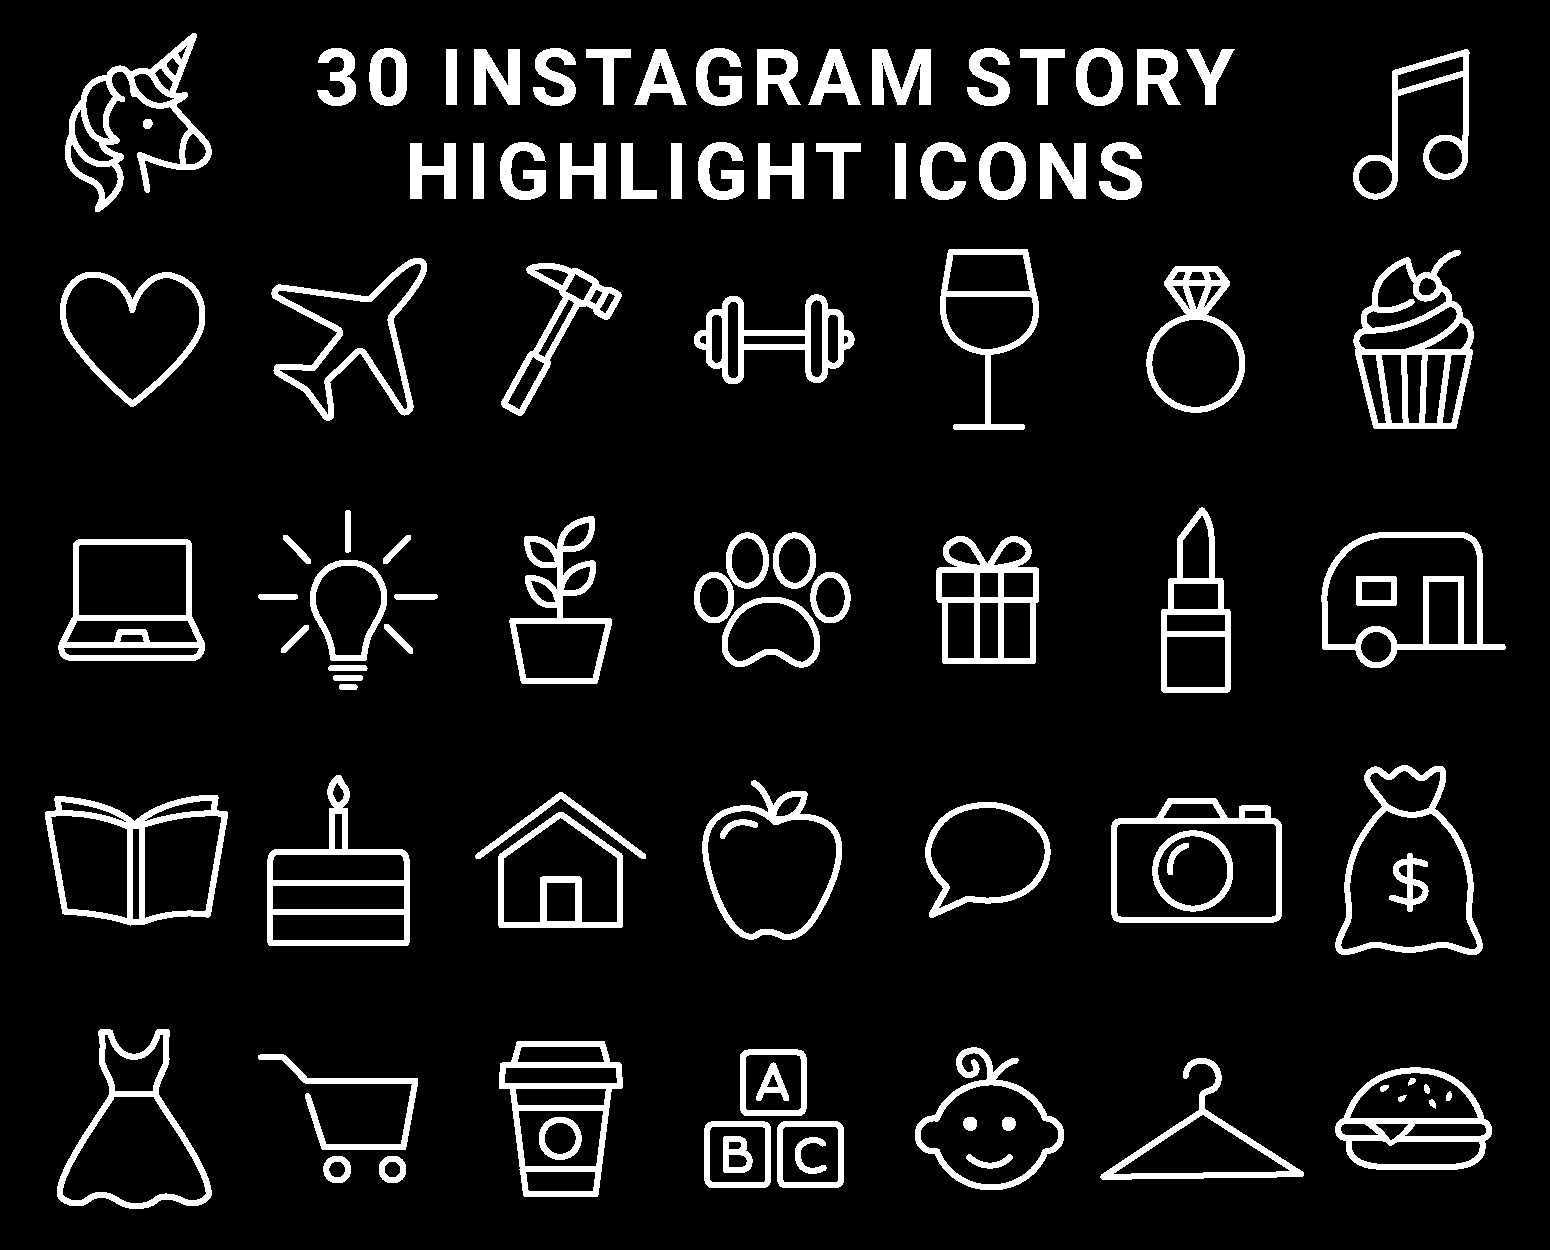 Monochrome Black and White Instagram Highlight Cover Icons